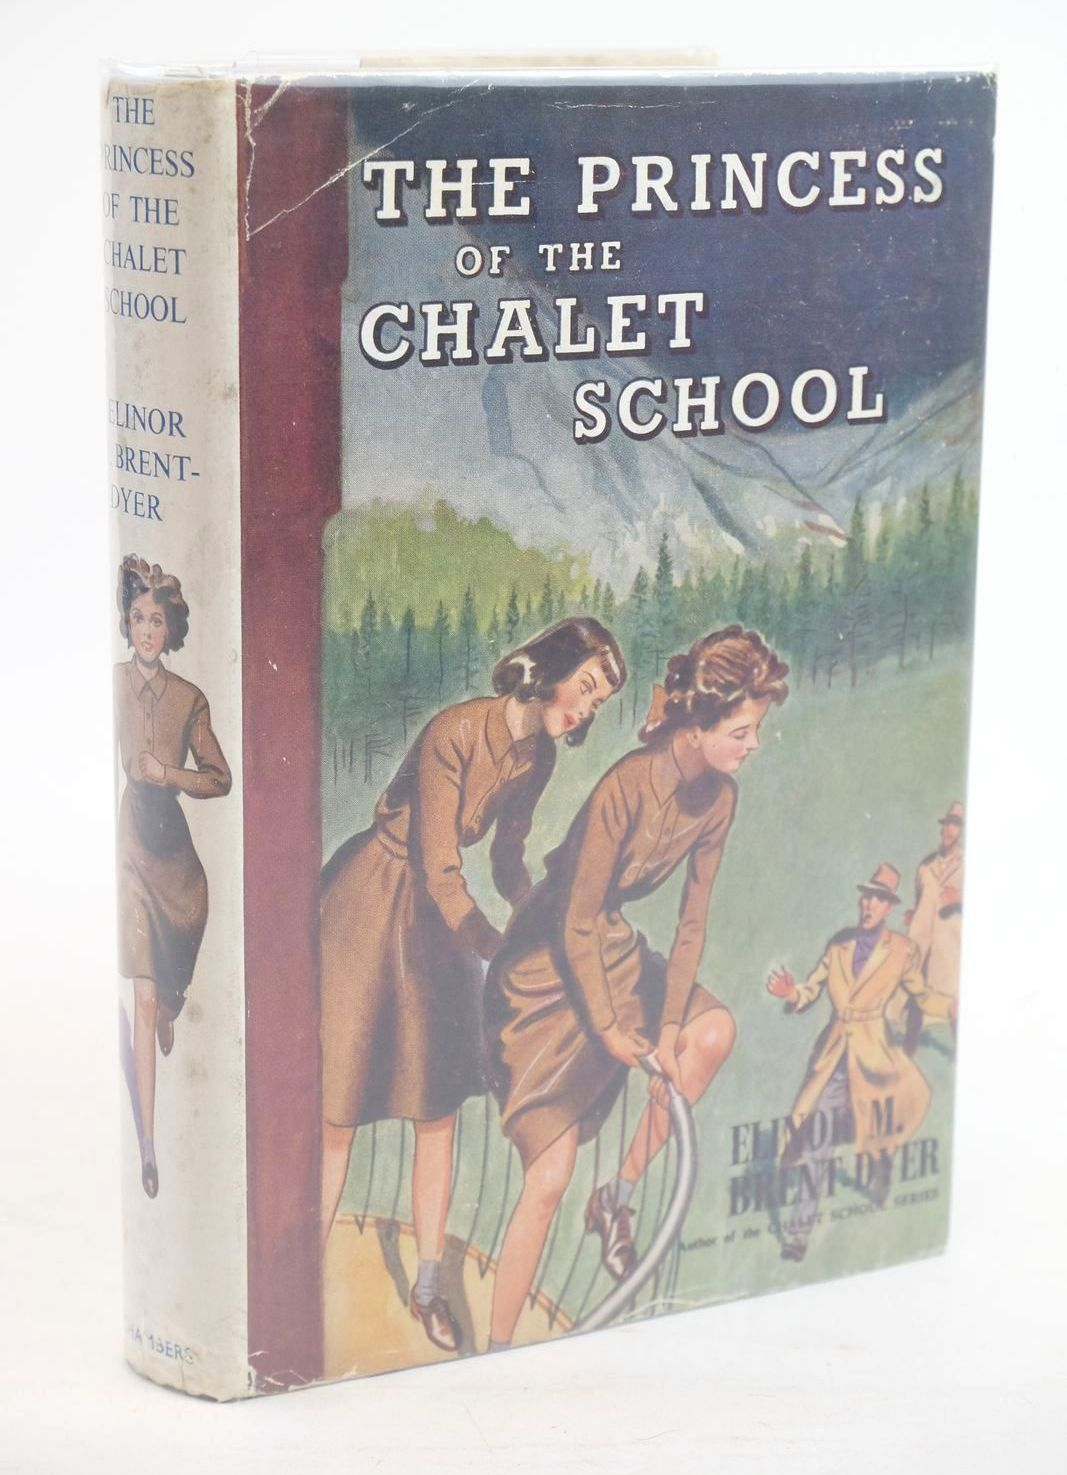 Photo of THE PRINCESS OF THE CHALET SCHOOL written by Brent-Dyer, Elinor M. published by W. & R. Chambers Limited (STOCK CODE: 1320038)  for sale by Stella & Rose's Books